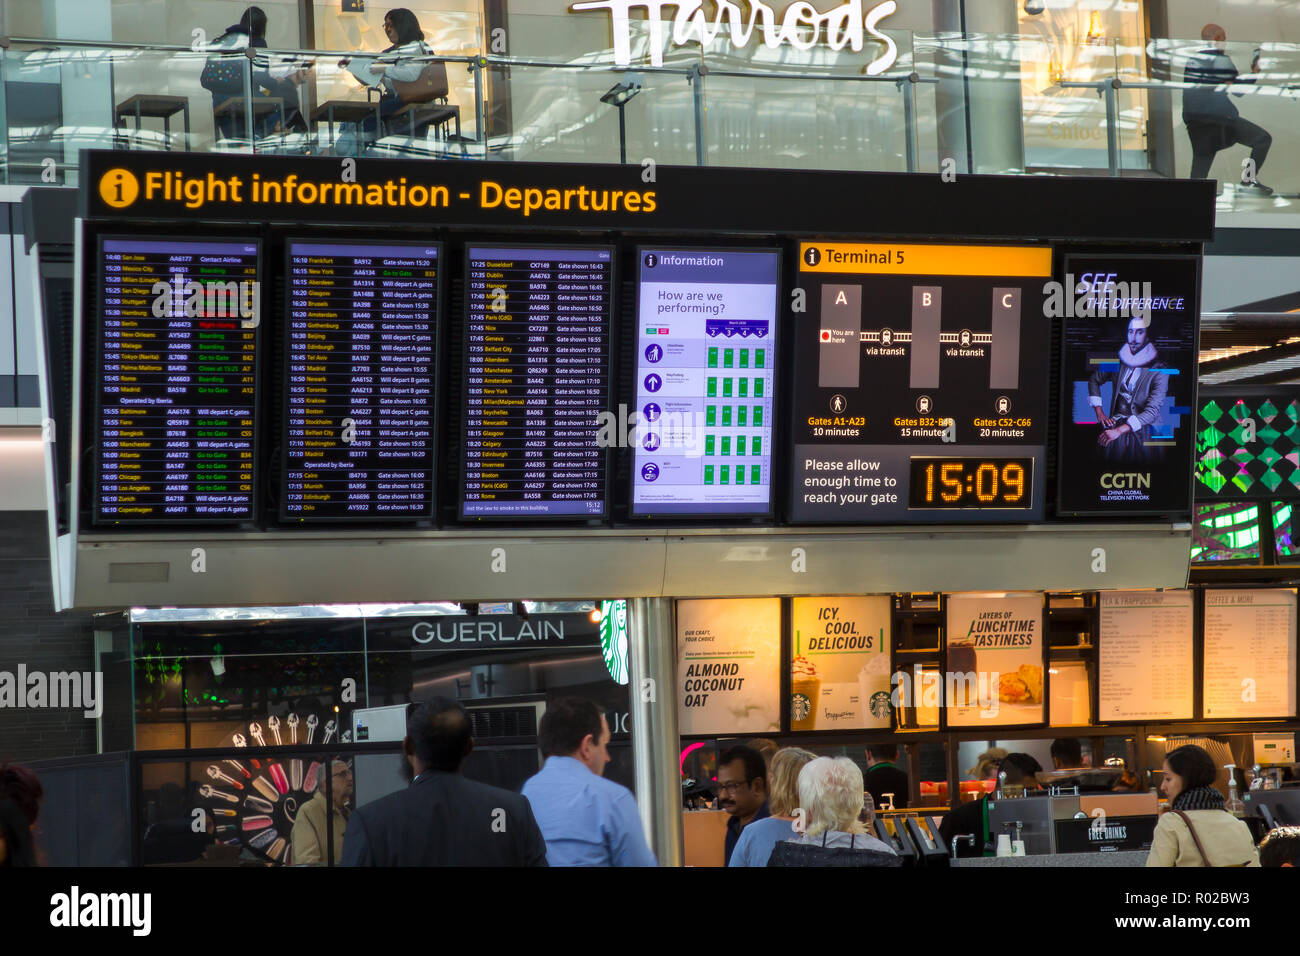 2 May 2018 A large flight information digital display board at Terminal 5 departures in Heathrow Airport England, This busy airport is one of the larg - Stock Image